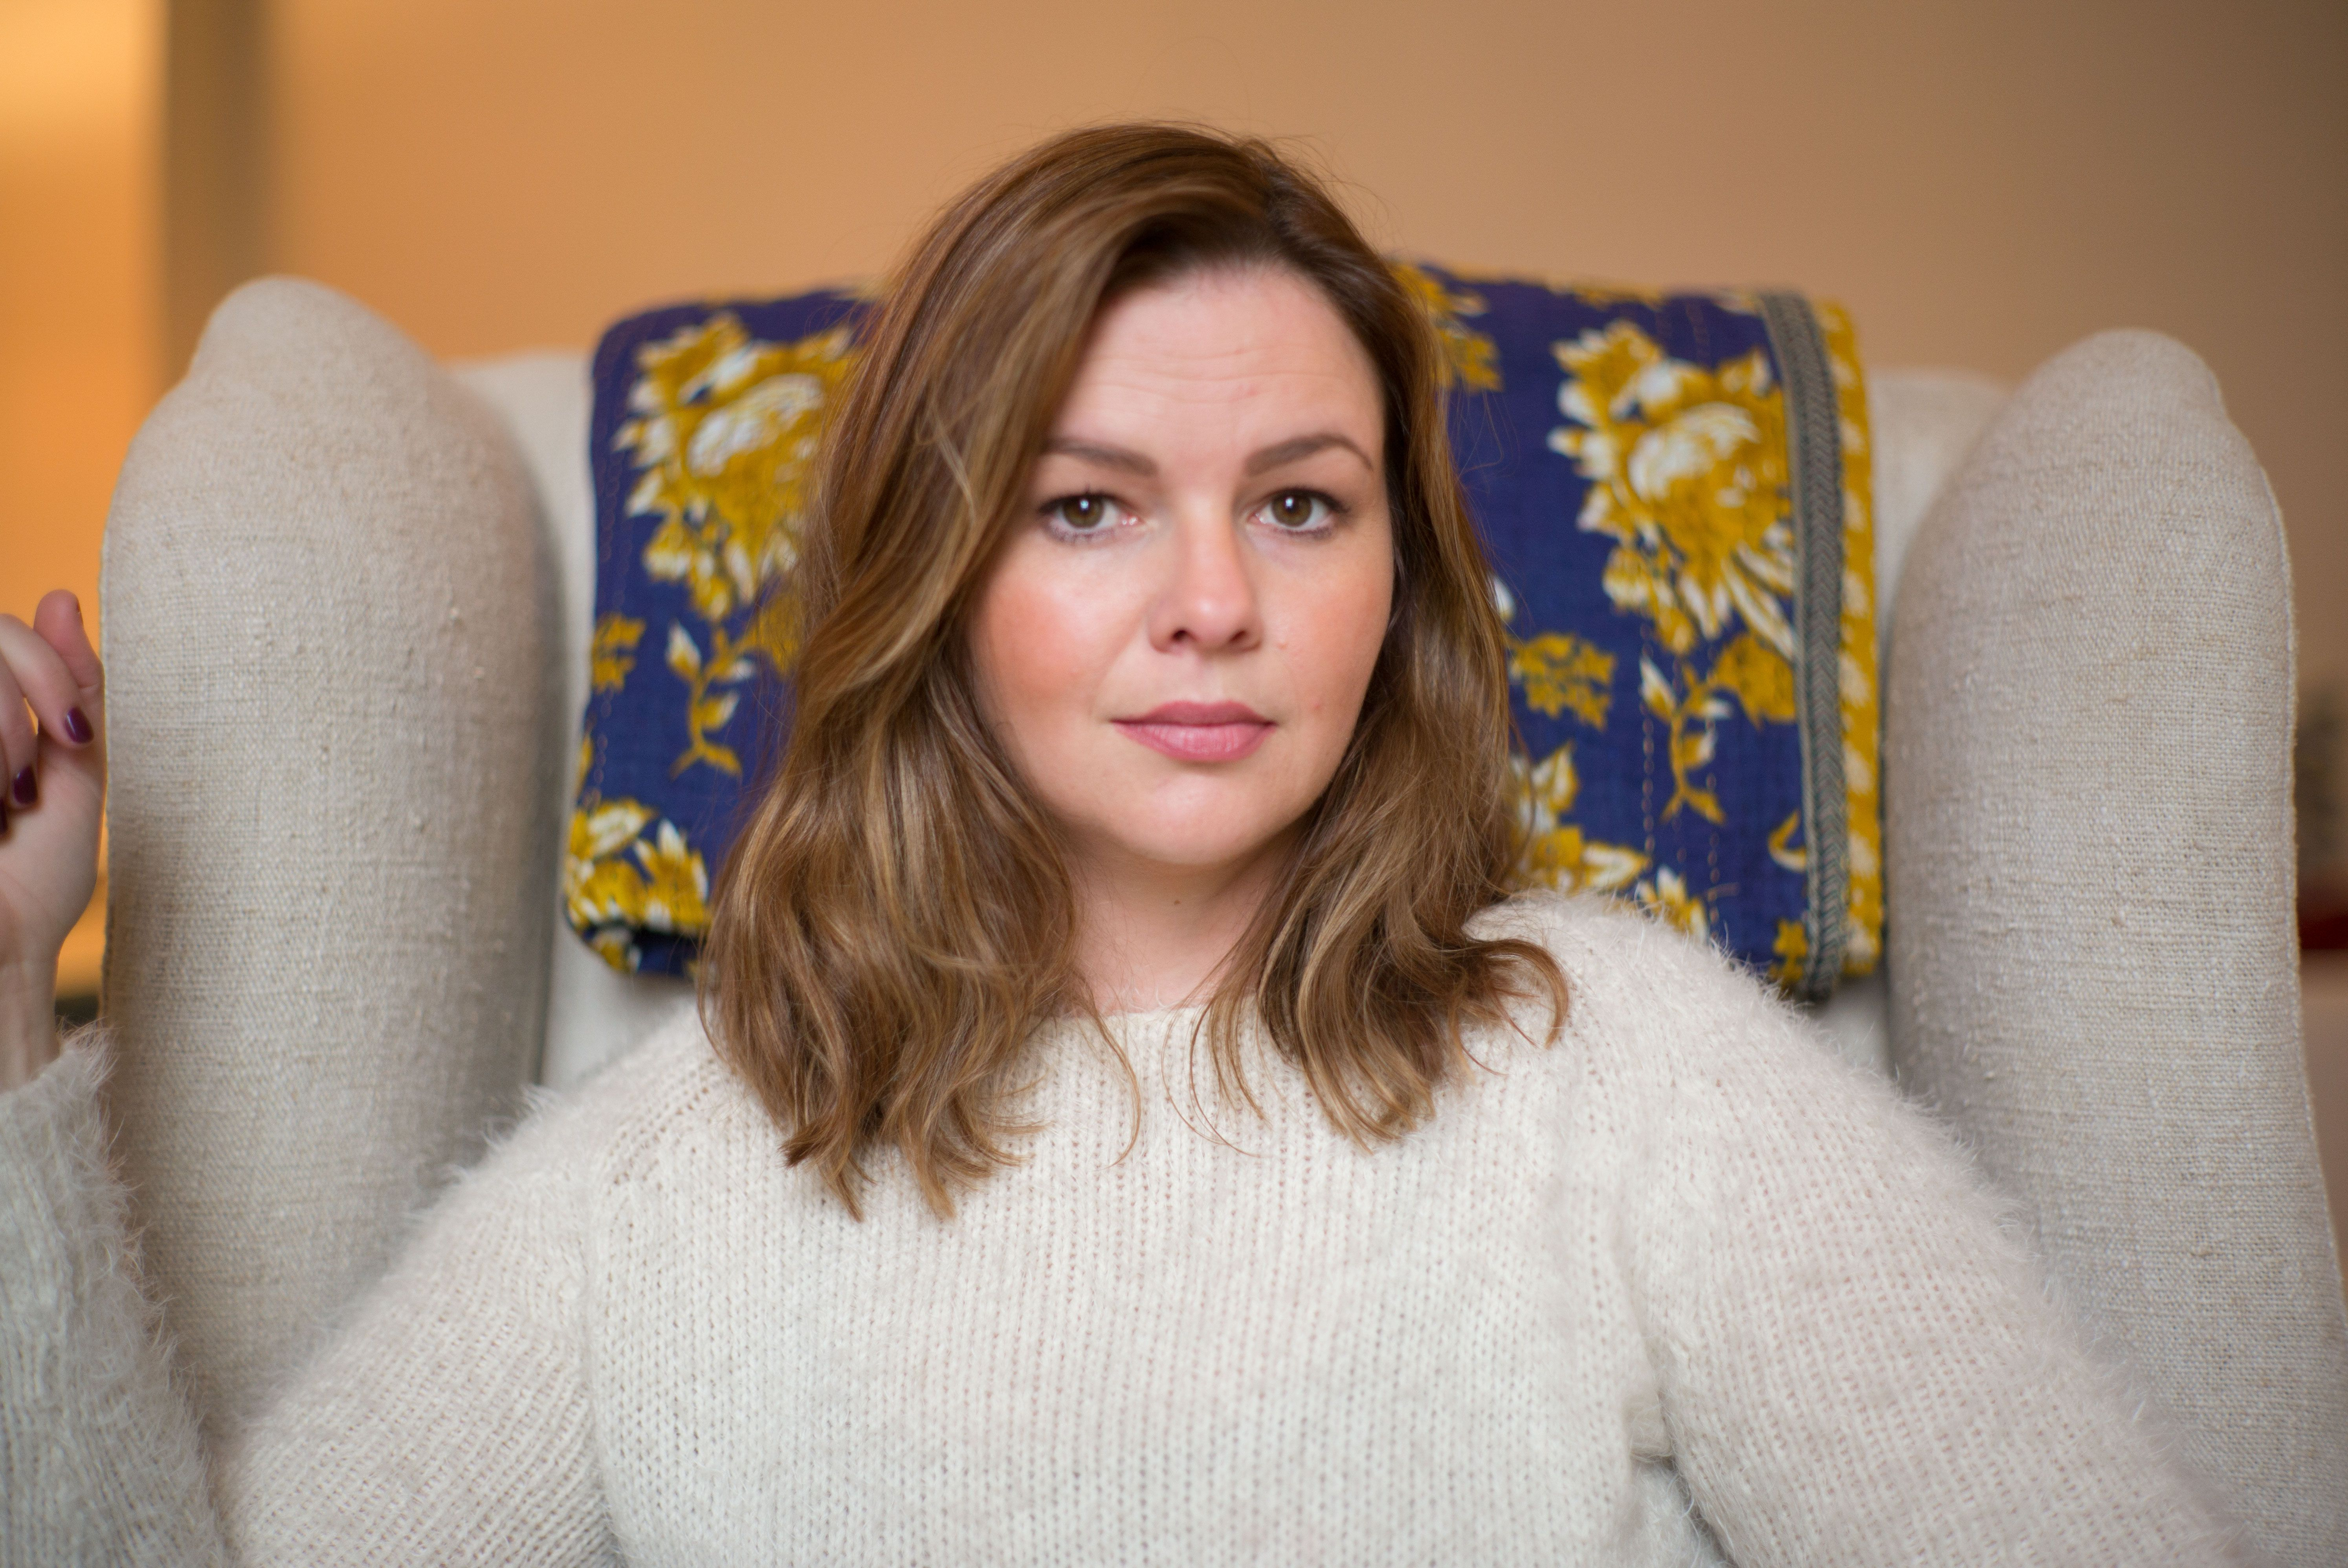 Amber Tamblyn on Schooling Trolls and Her Crazy-Good New Novel About Male Sexual Assault